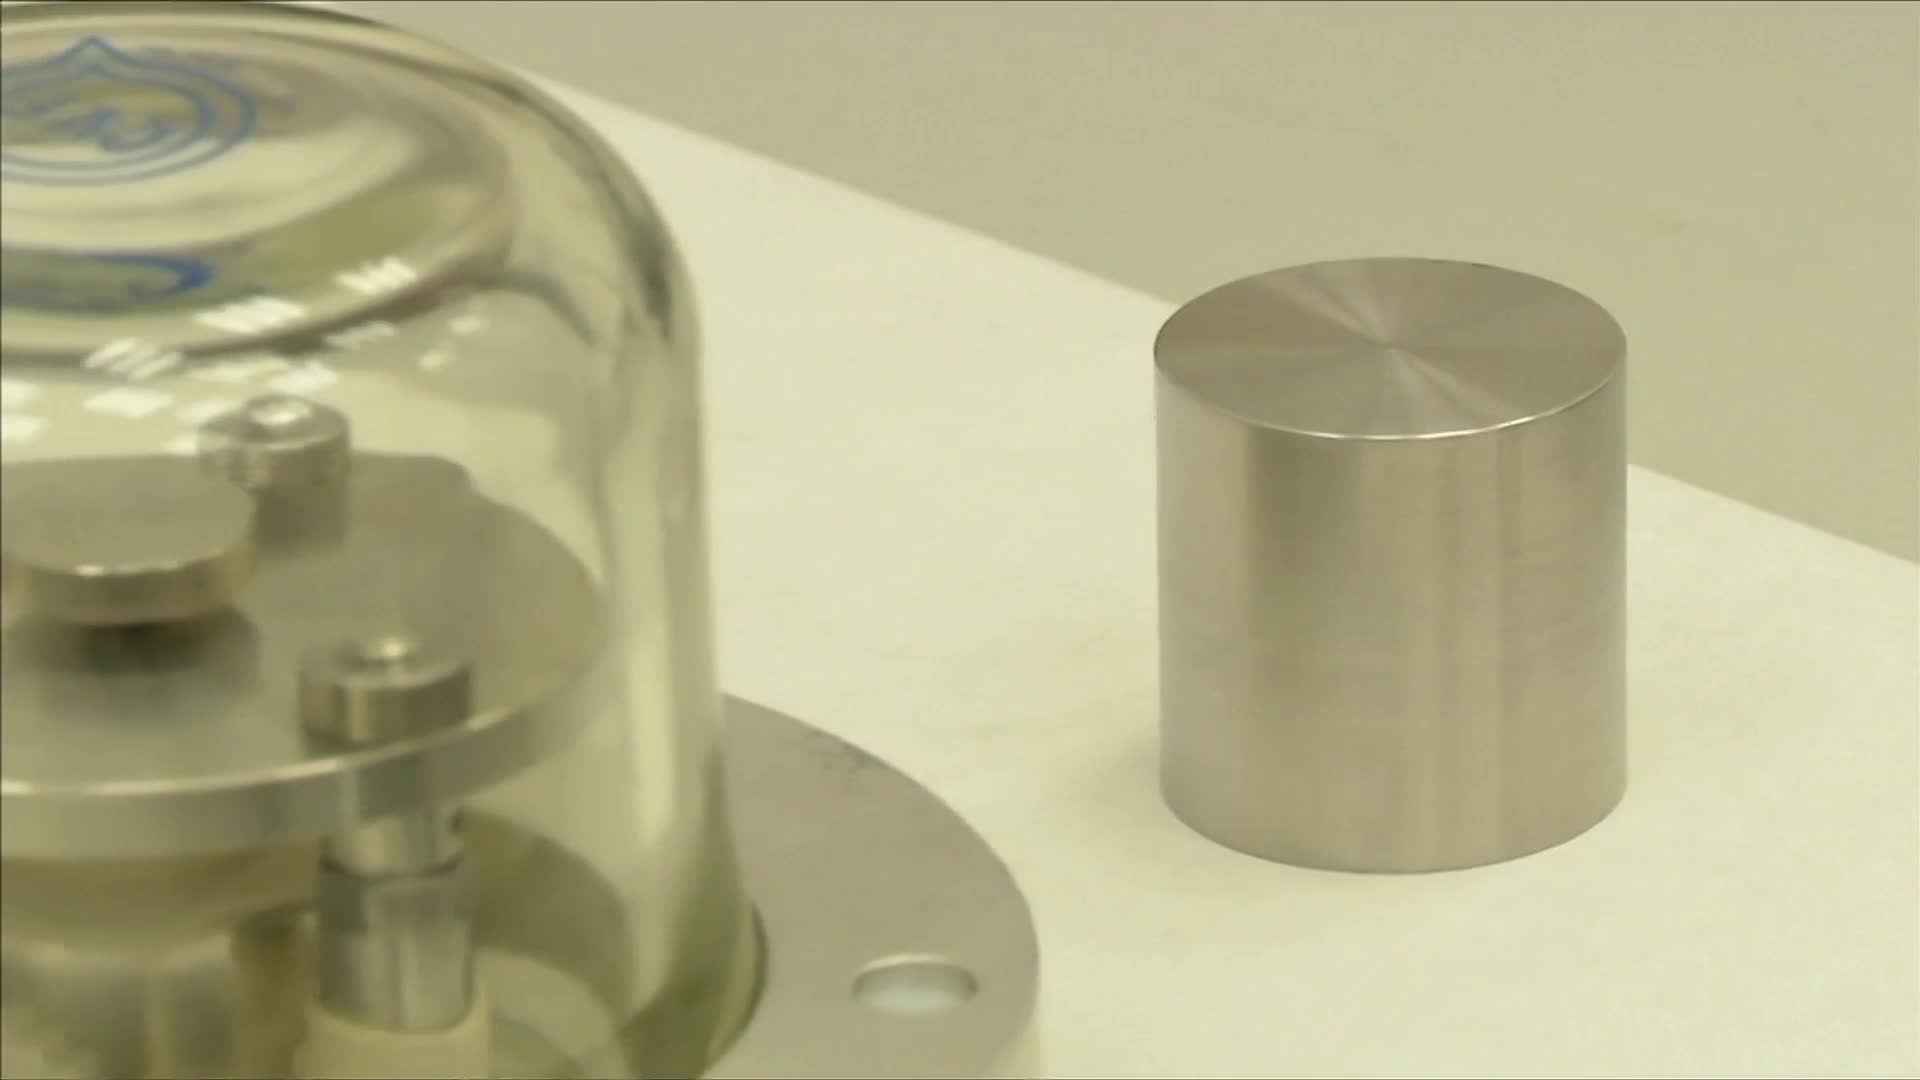 Noticias Nacionales - Nations To Consider Changing Definition Of A Kilogram